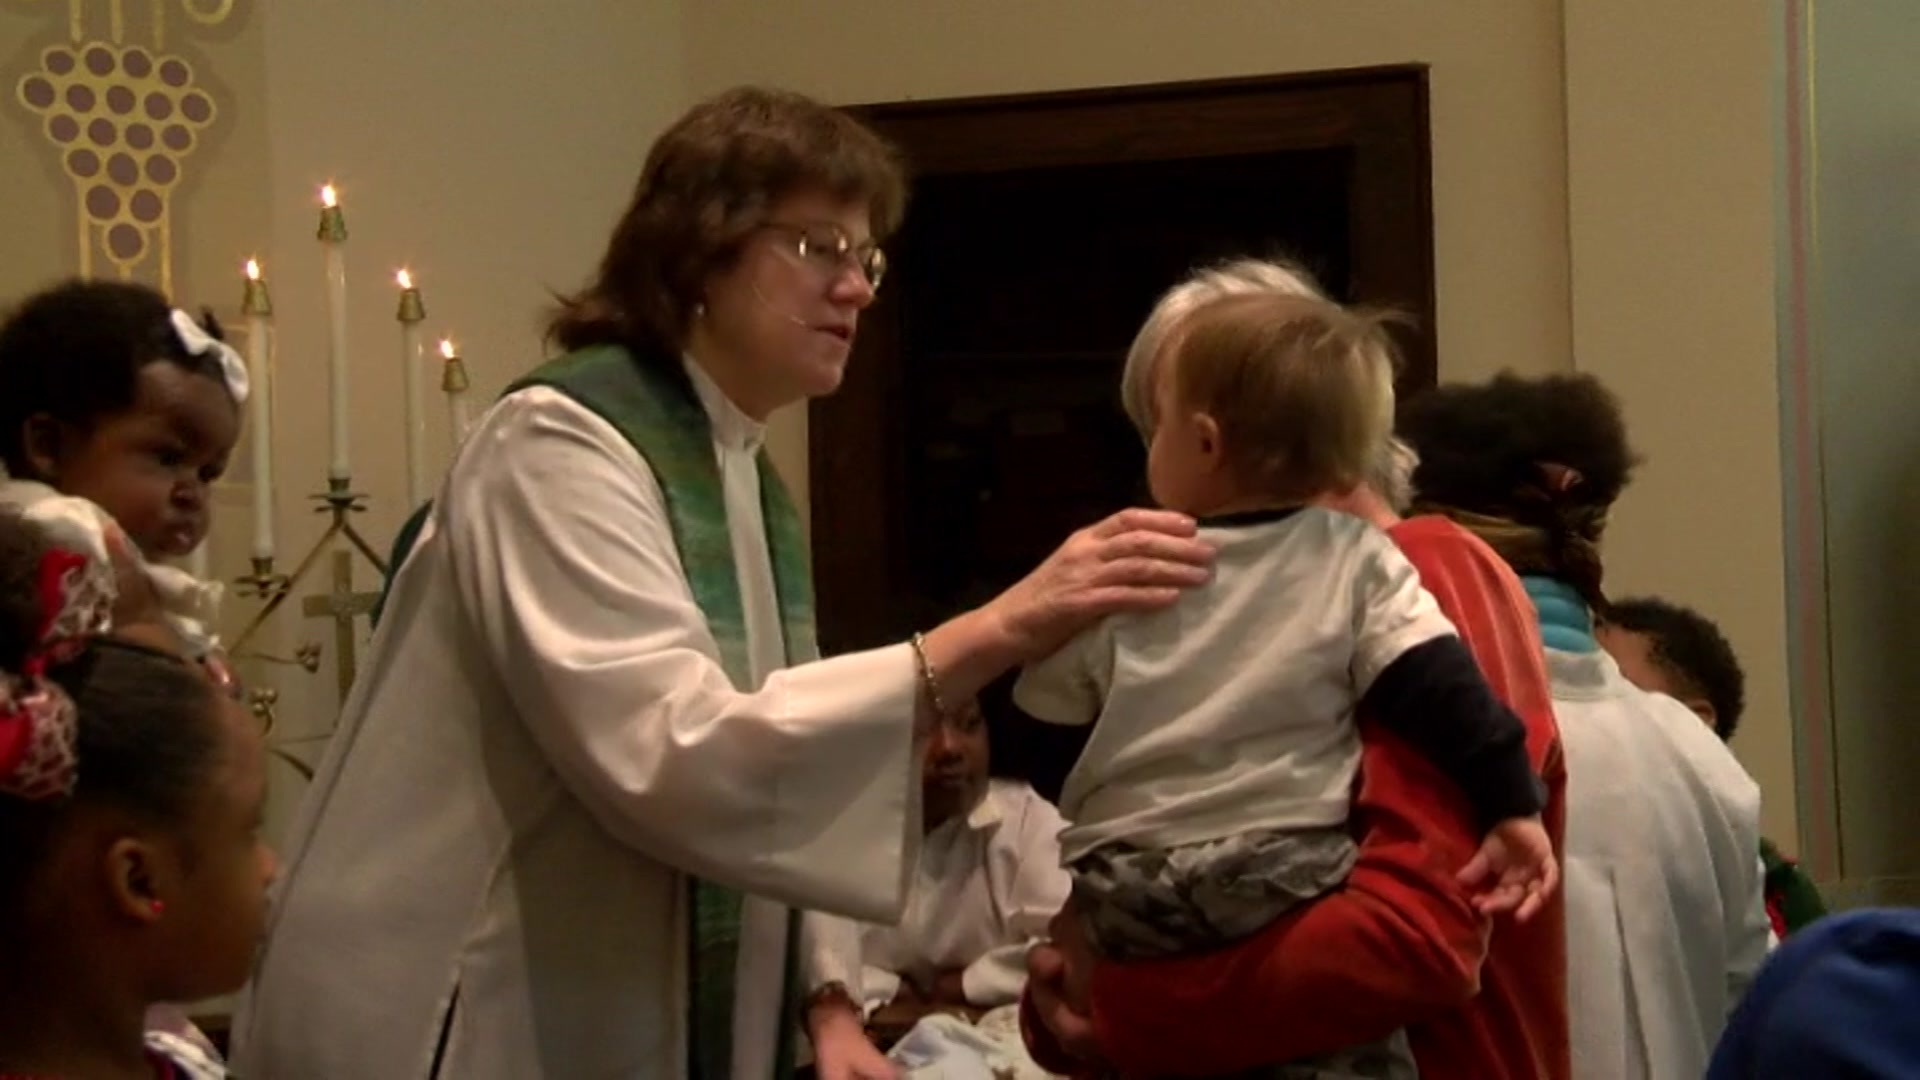 Milwaukee churches support pregnant women during Strong Baby Sabbath